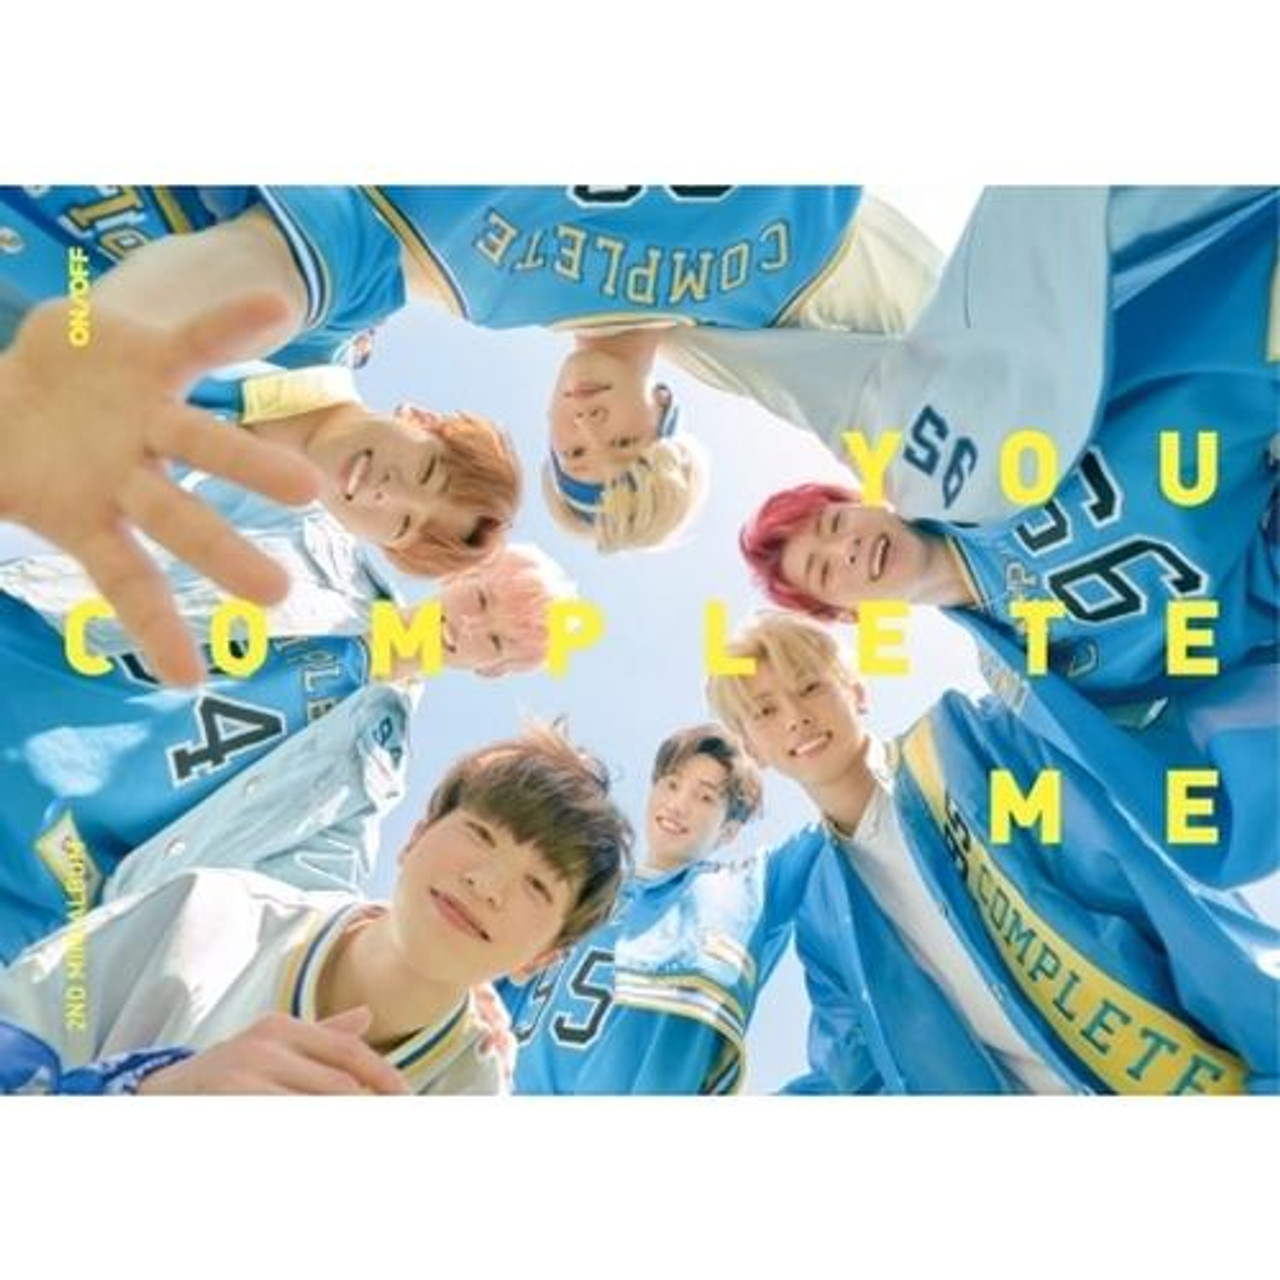 ONF  - 2nd Mini [YOU COMPLETE ME]